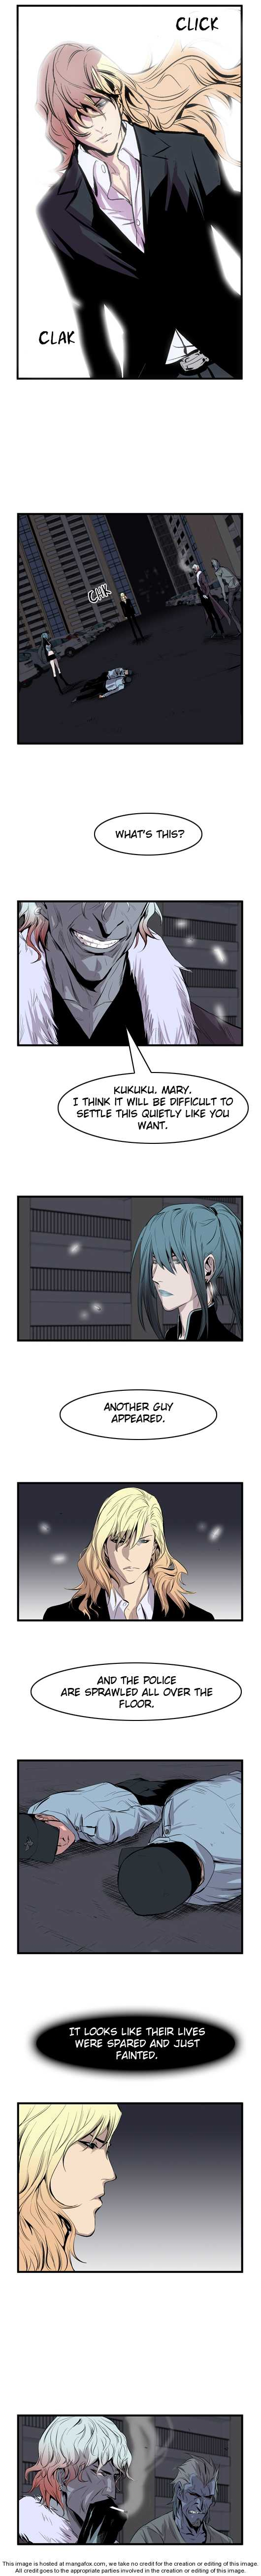 Noblesse 43 Page 5